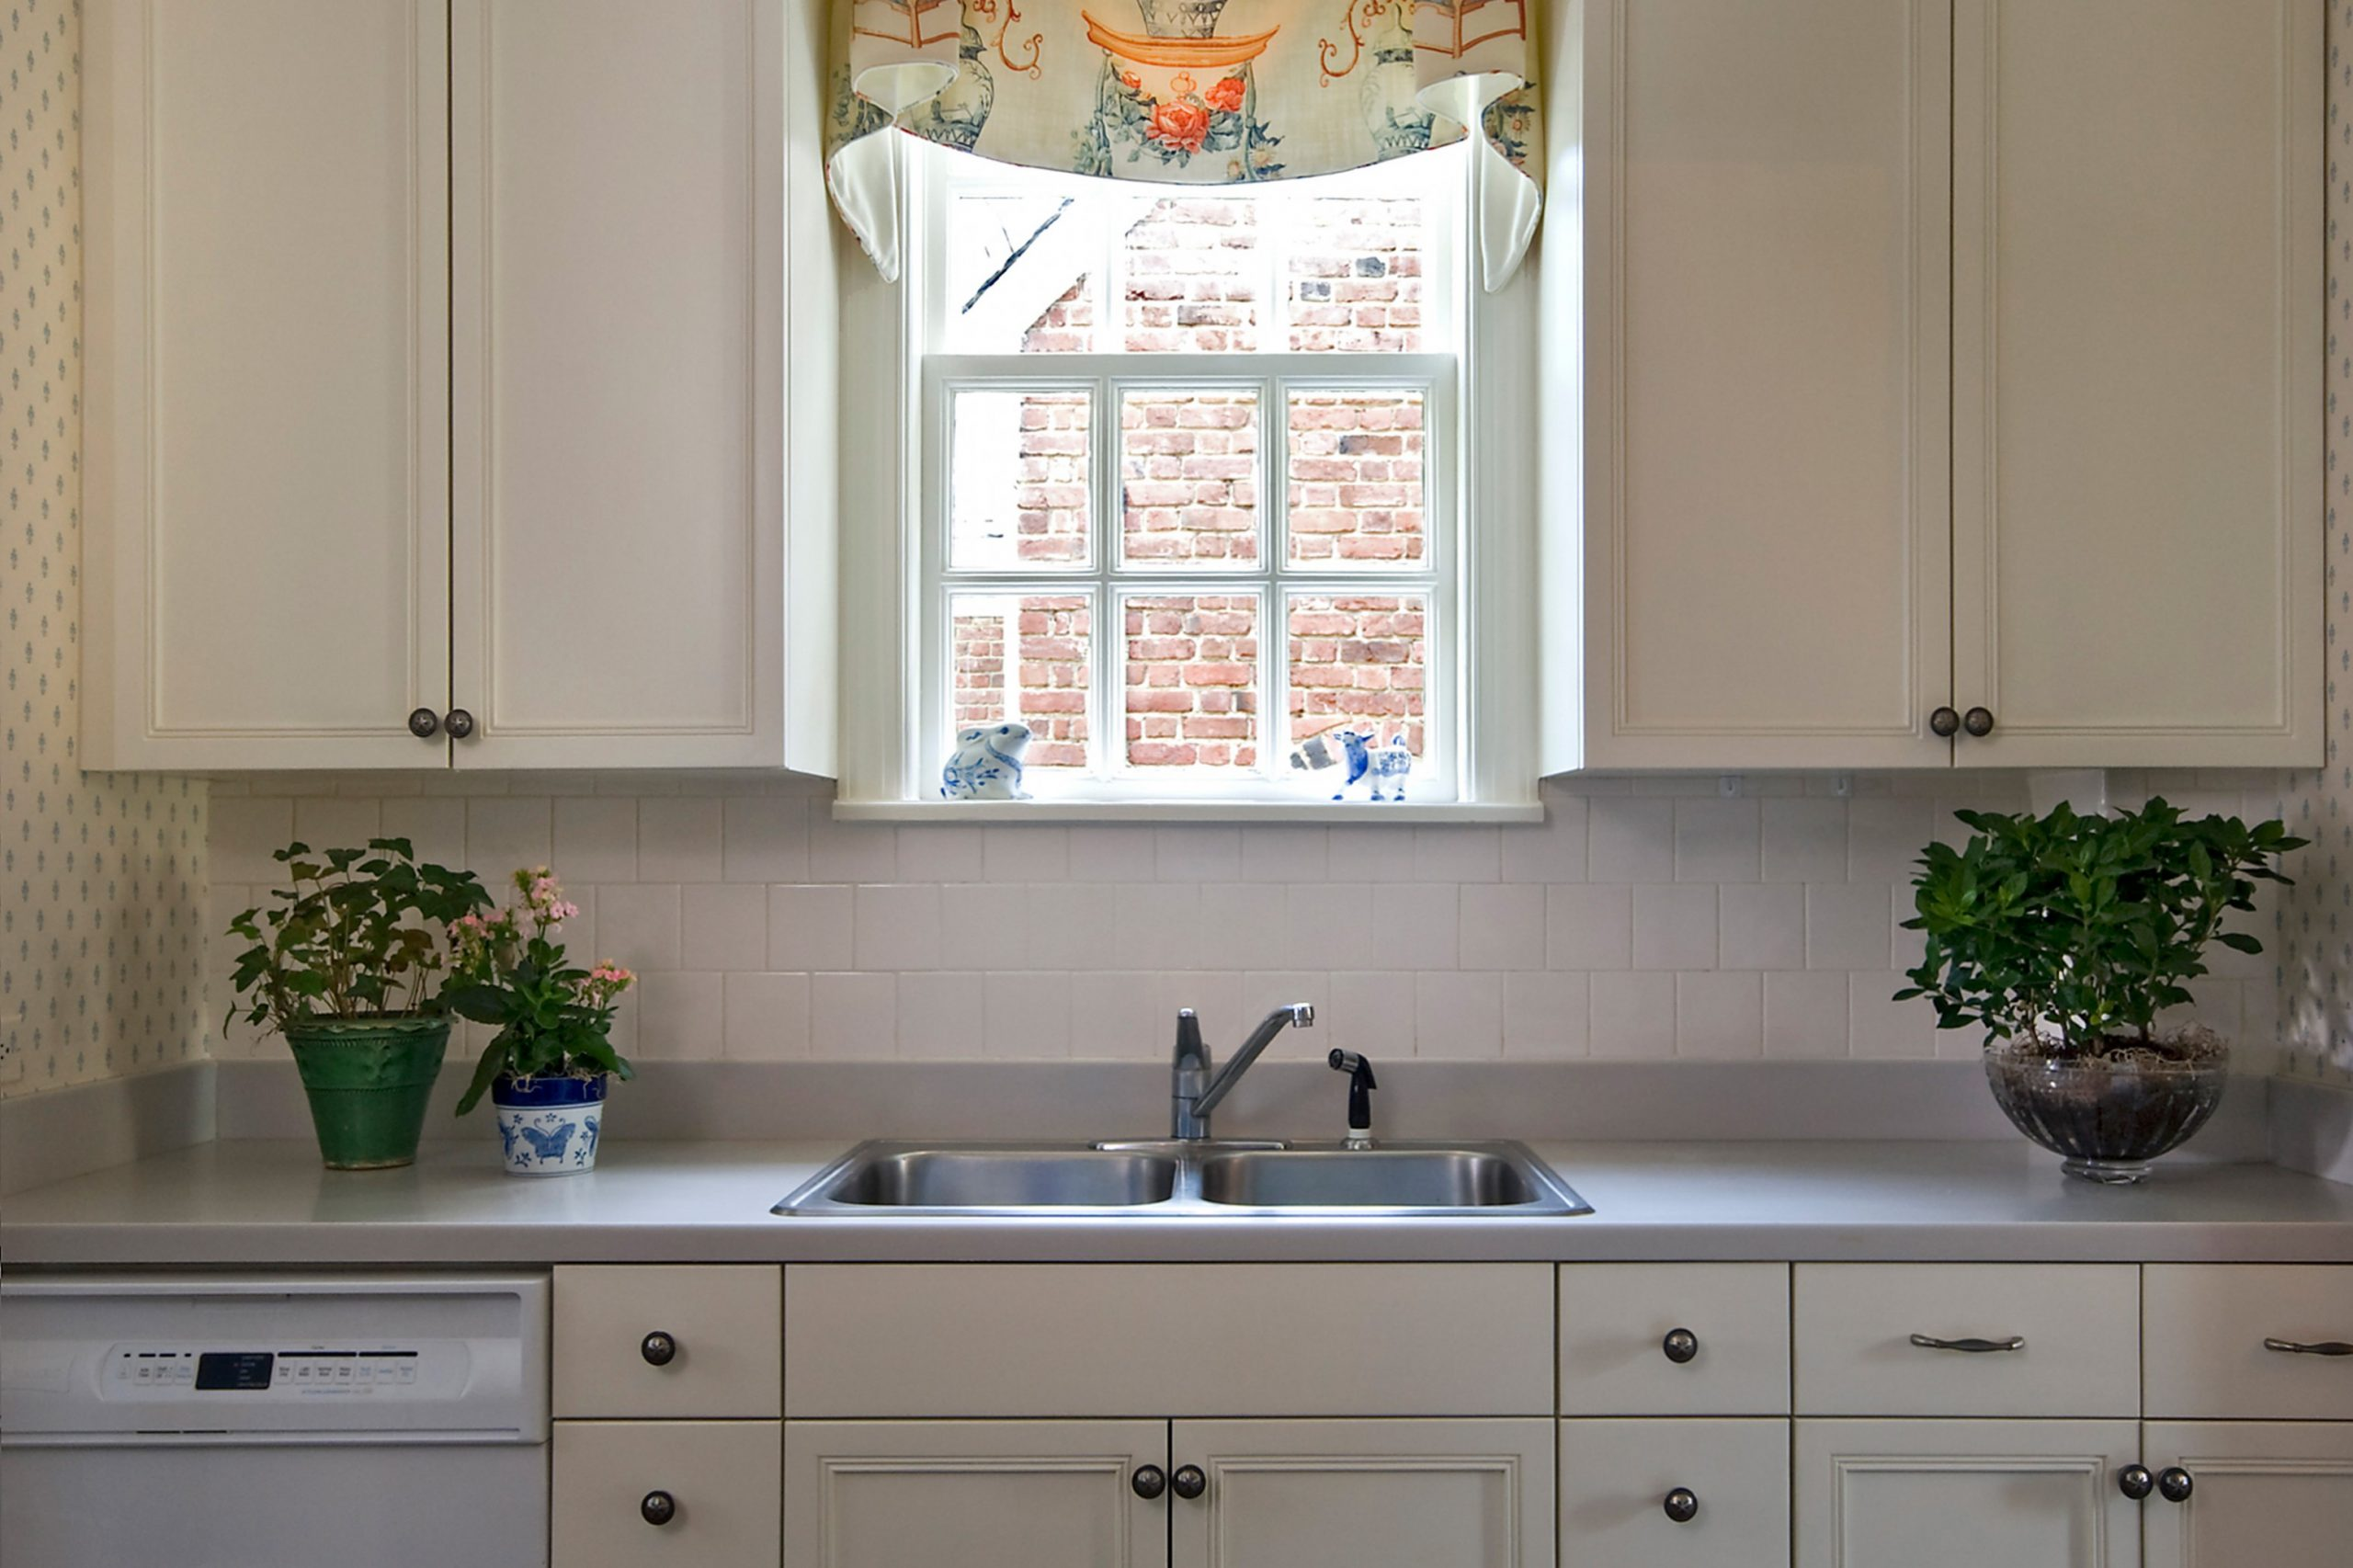 Kitchen Cabinet Refacing  Kitchen Refacing Cost - Refacing Kitchen Cabinets Cost